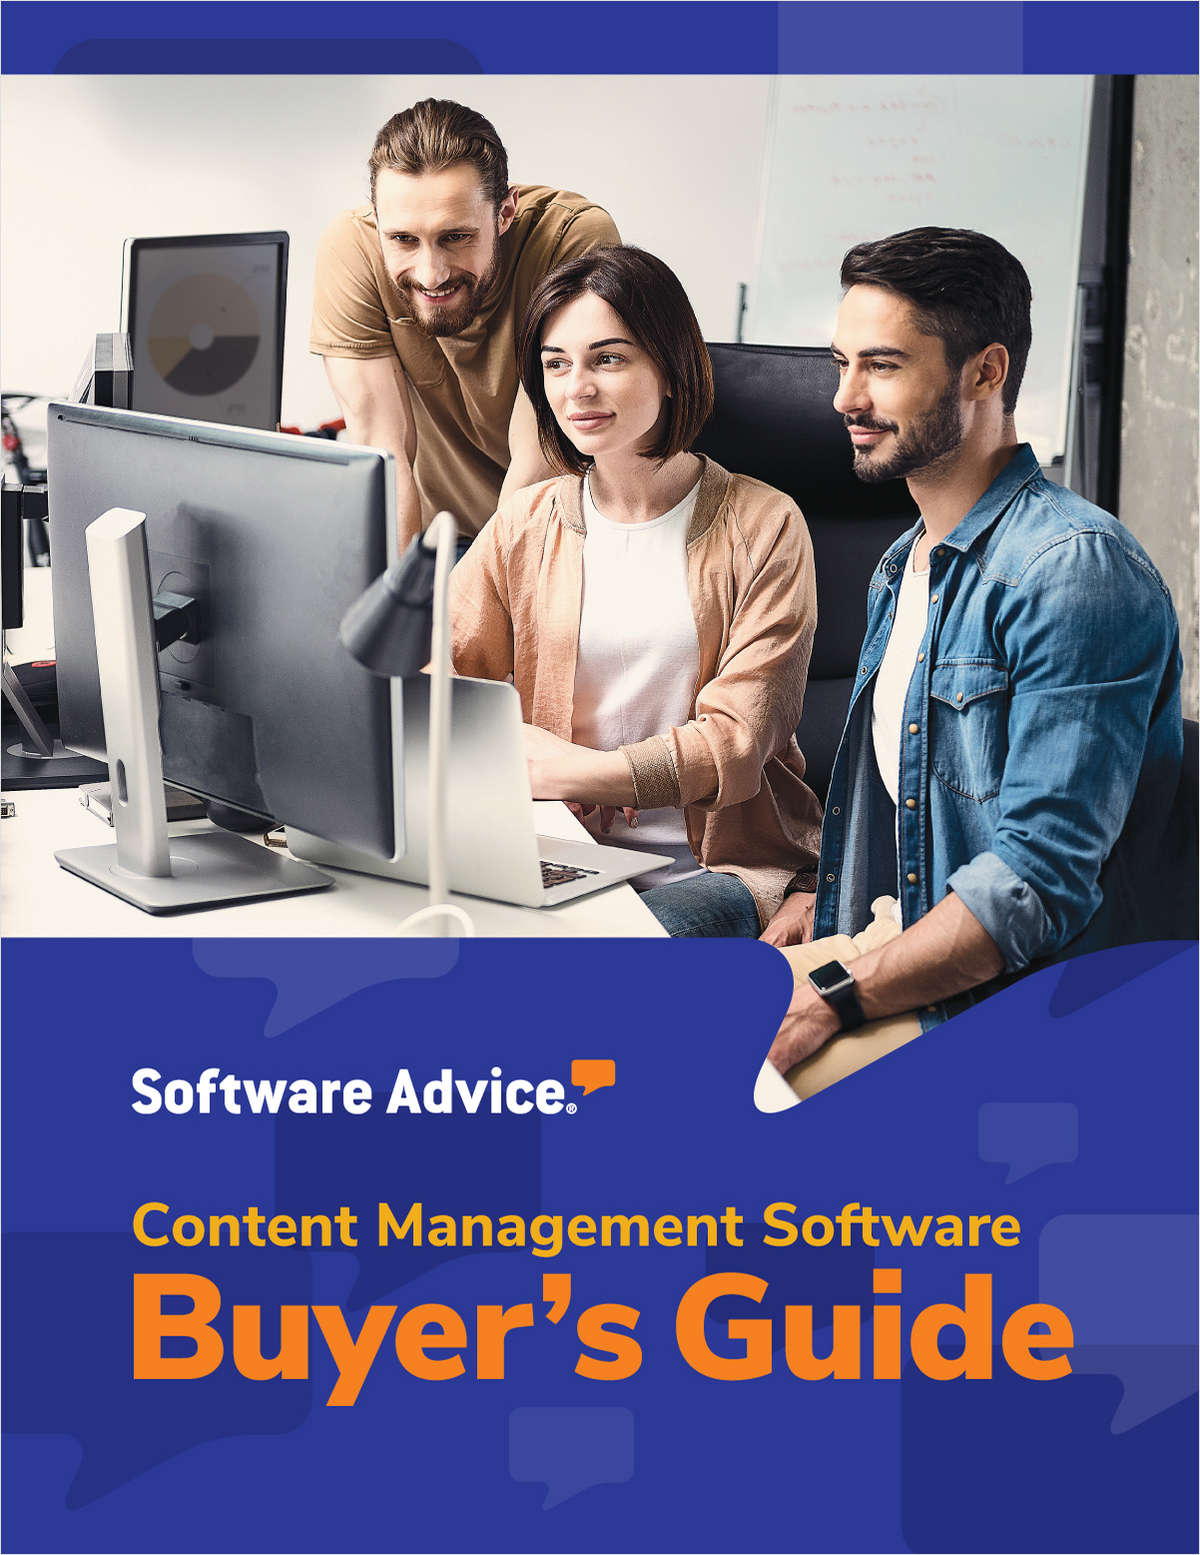 What You Need to Know Before Buying Content Management Software